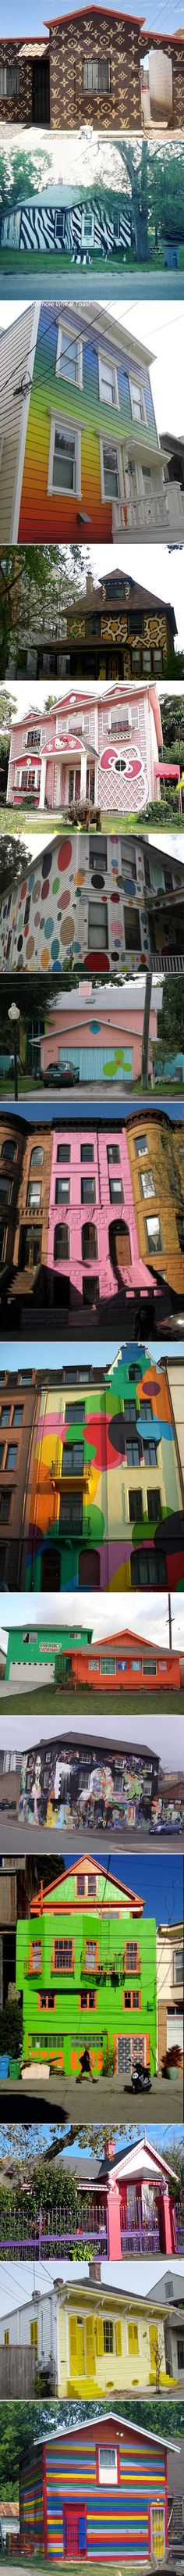 Crazy house paint jobs.